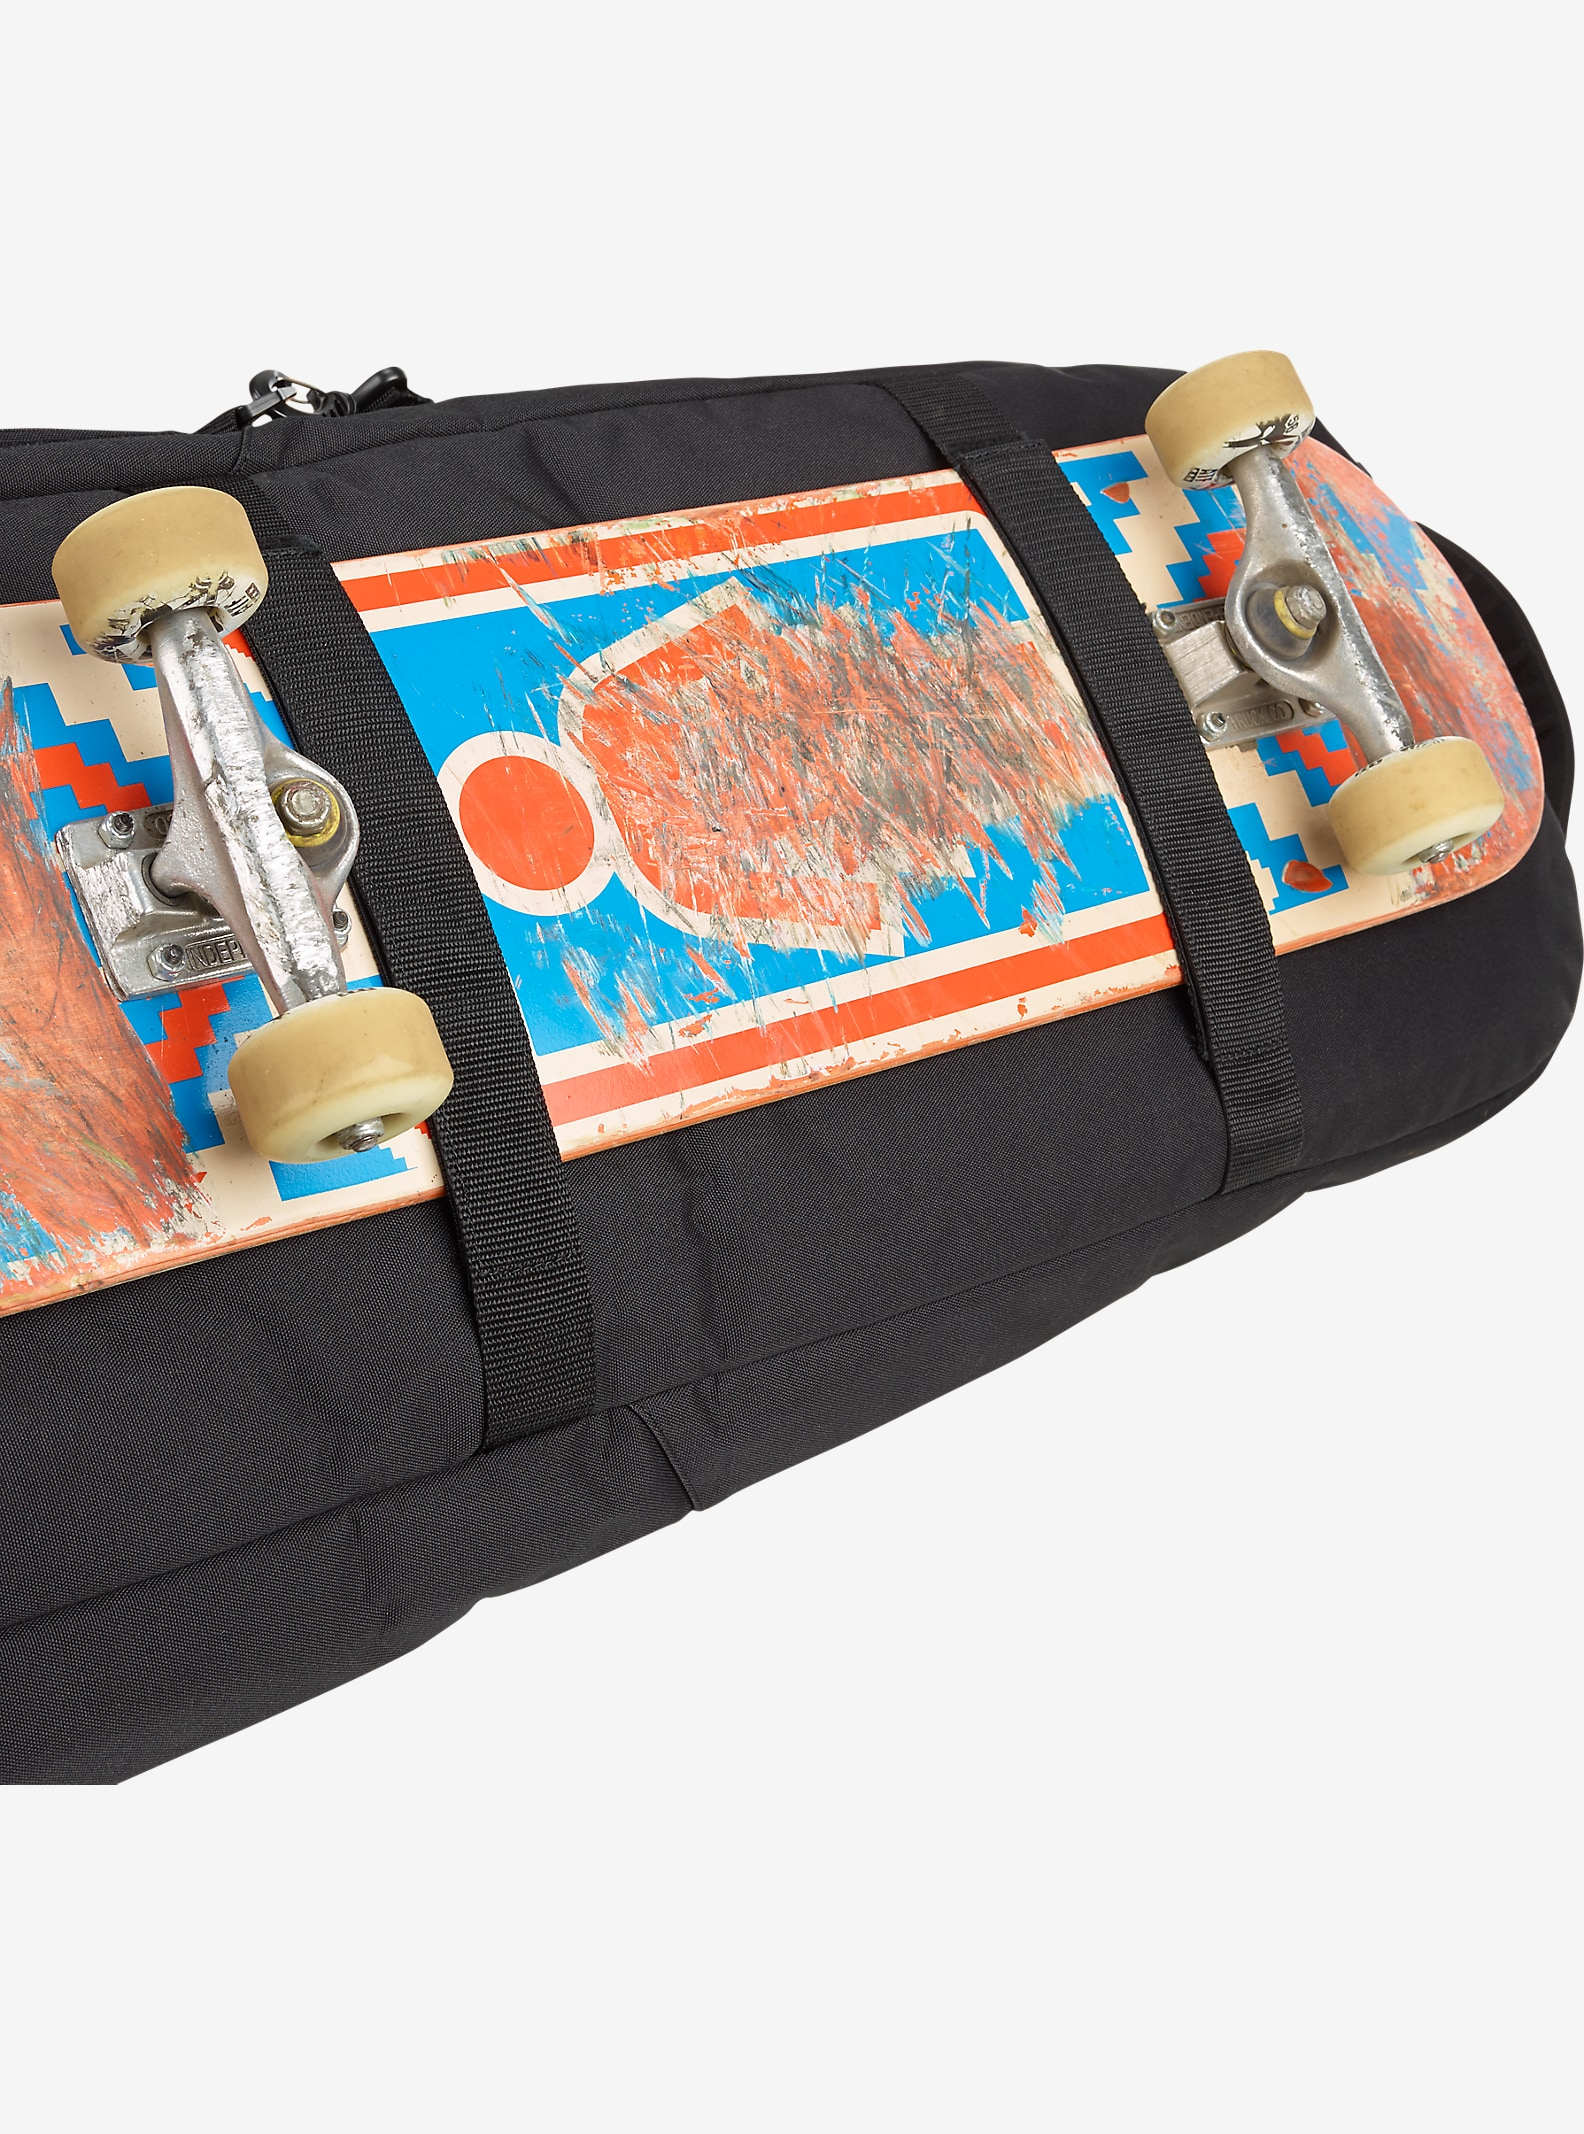 Burton Gig Bag shown in Earth Print